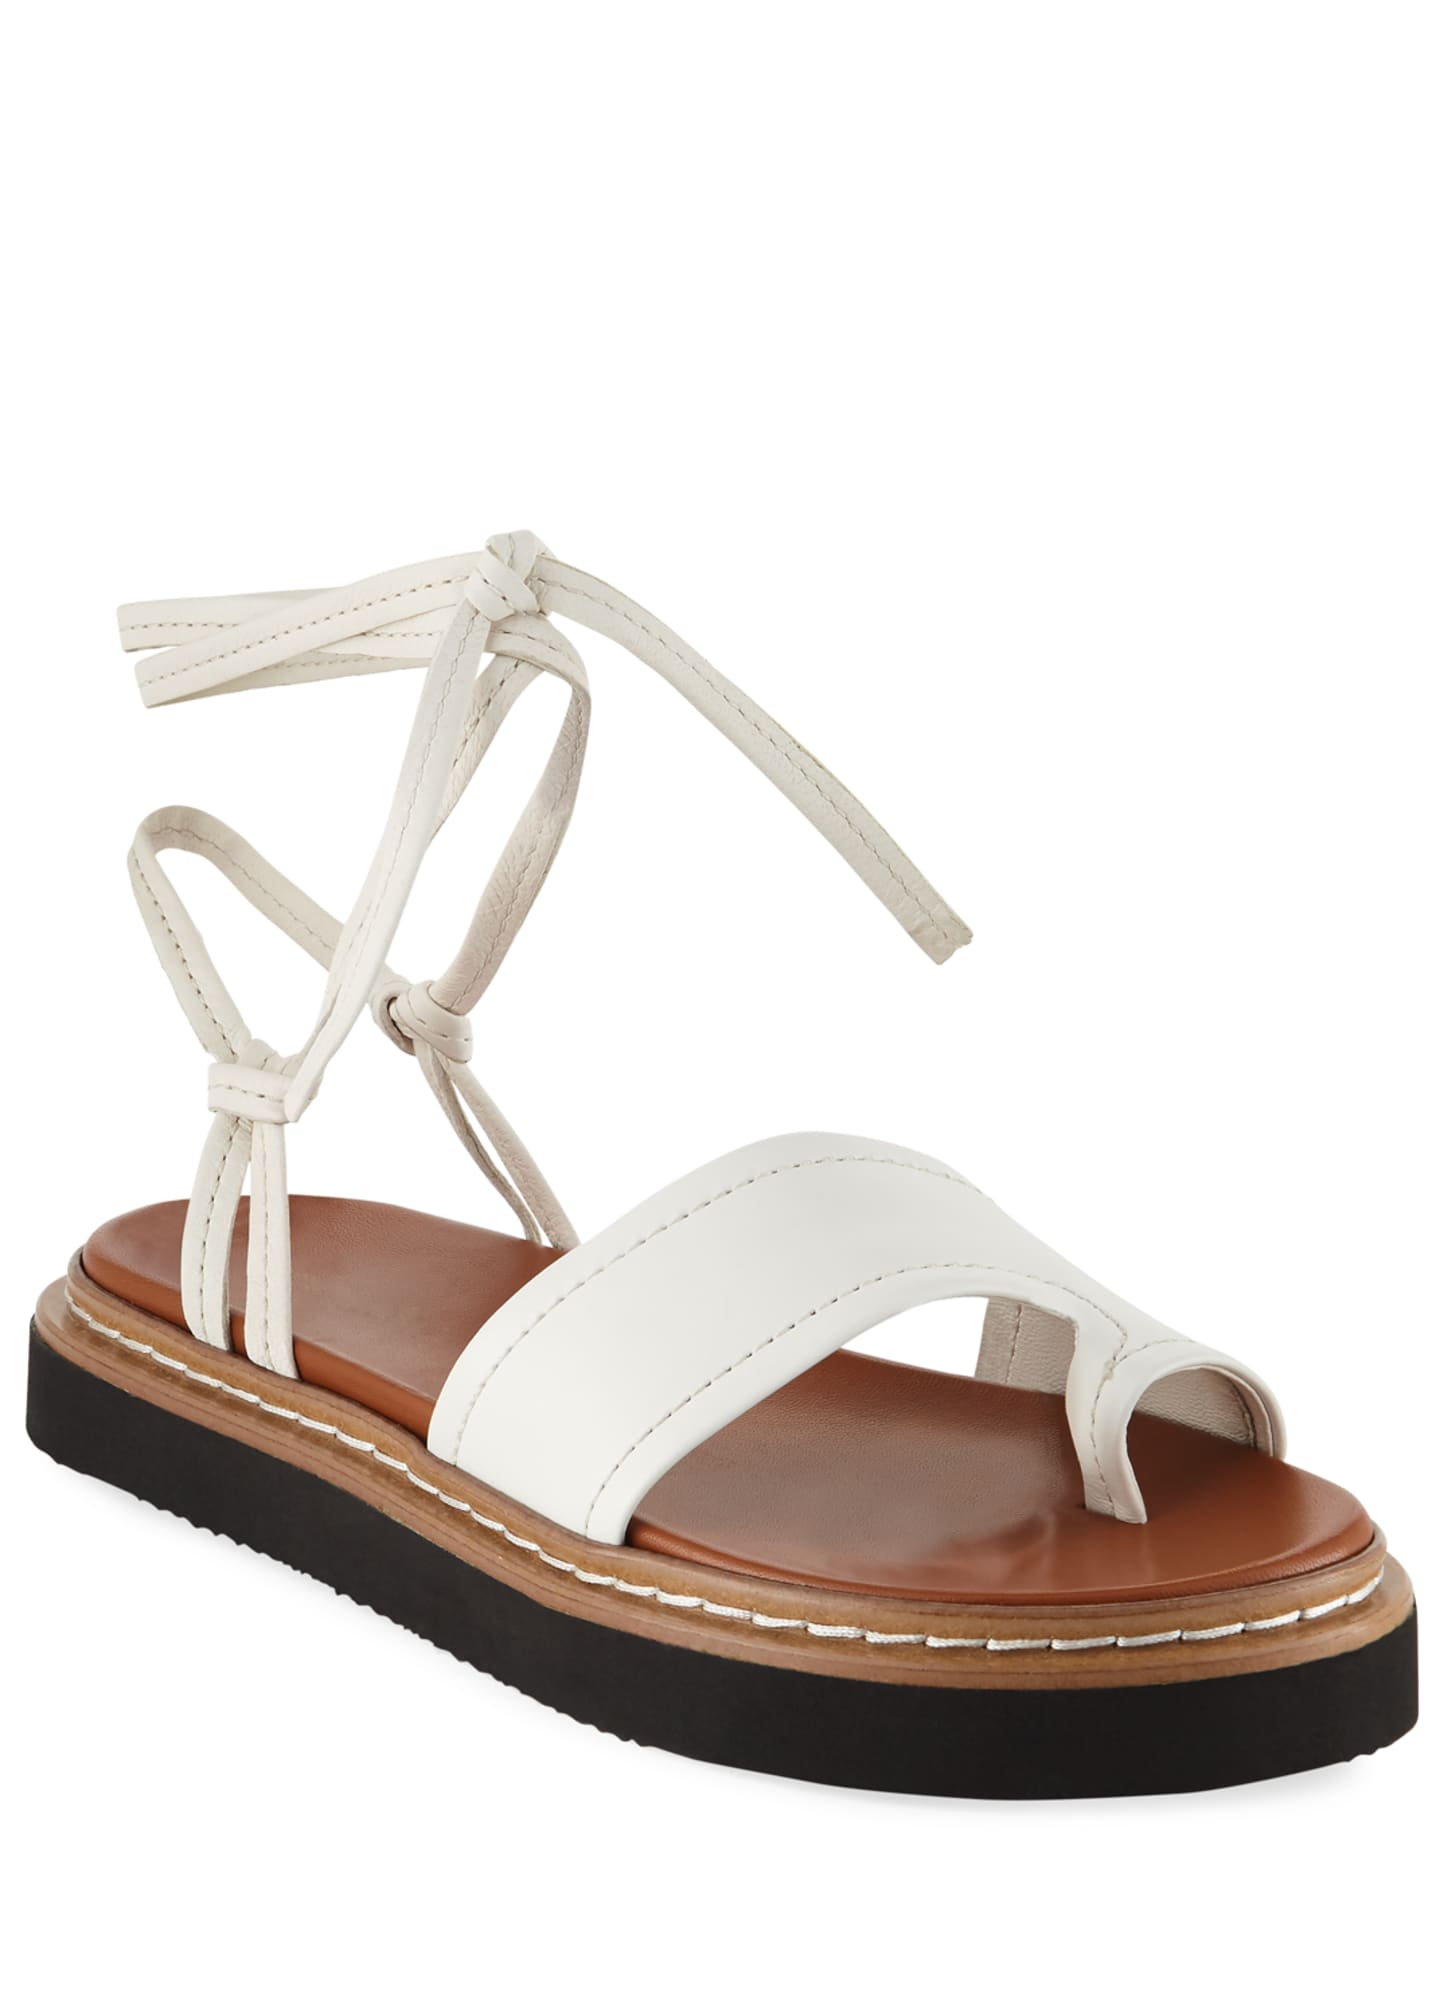 3.1 Phillip Lim Yasmine Leather Ankle-Wrap Platform Sandals